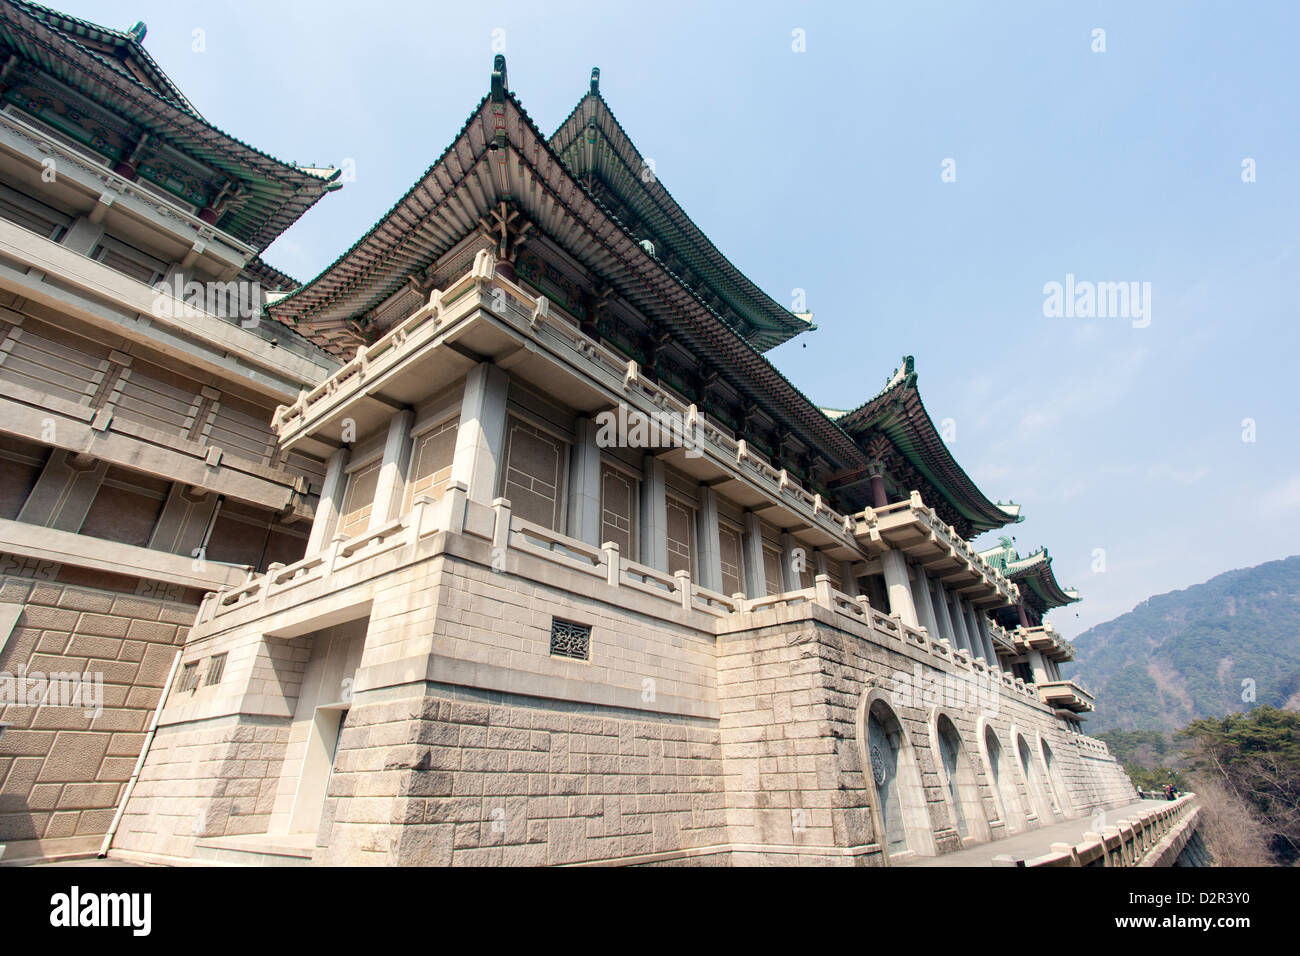 International Friendship Exhibition, complex housing the world's gifts for the Great Leaders, Mount Myohyang, - Stock Image